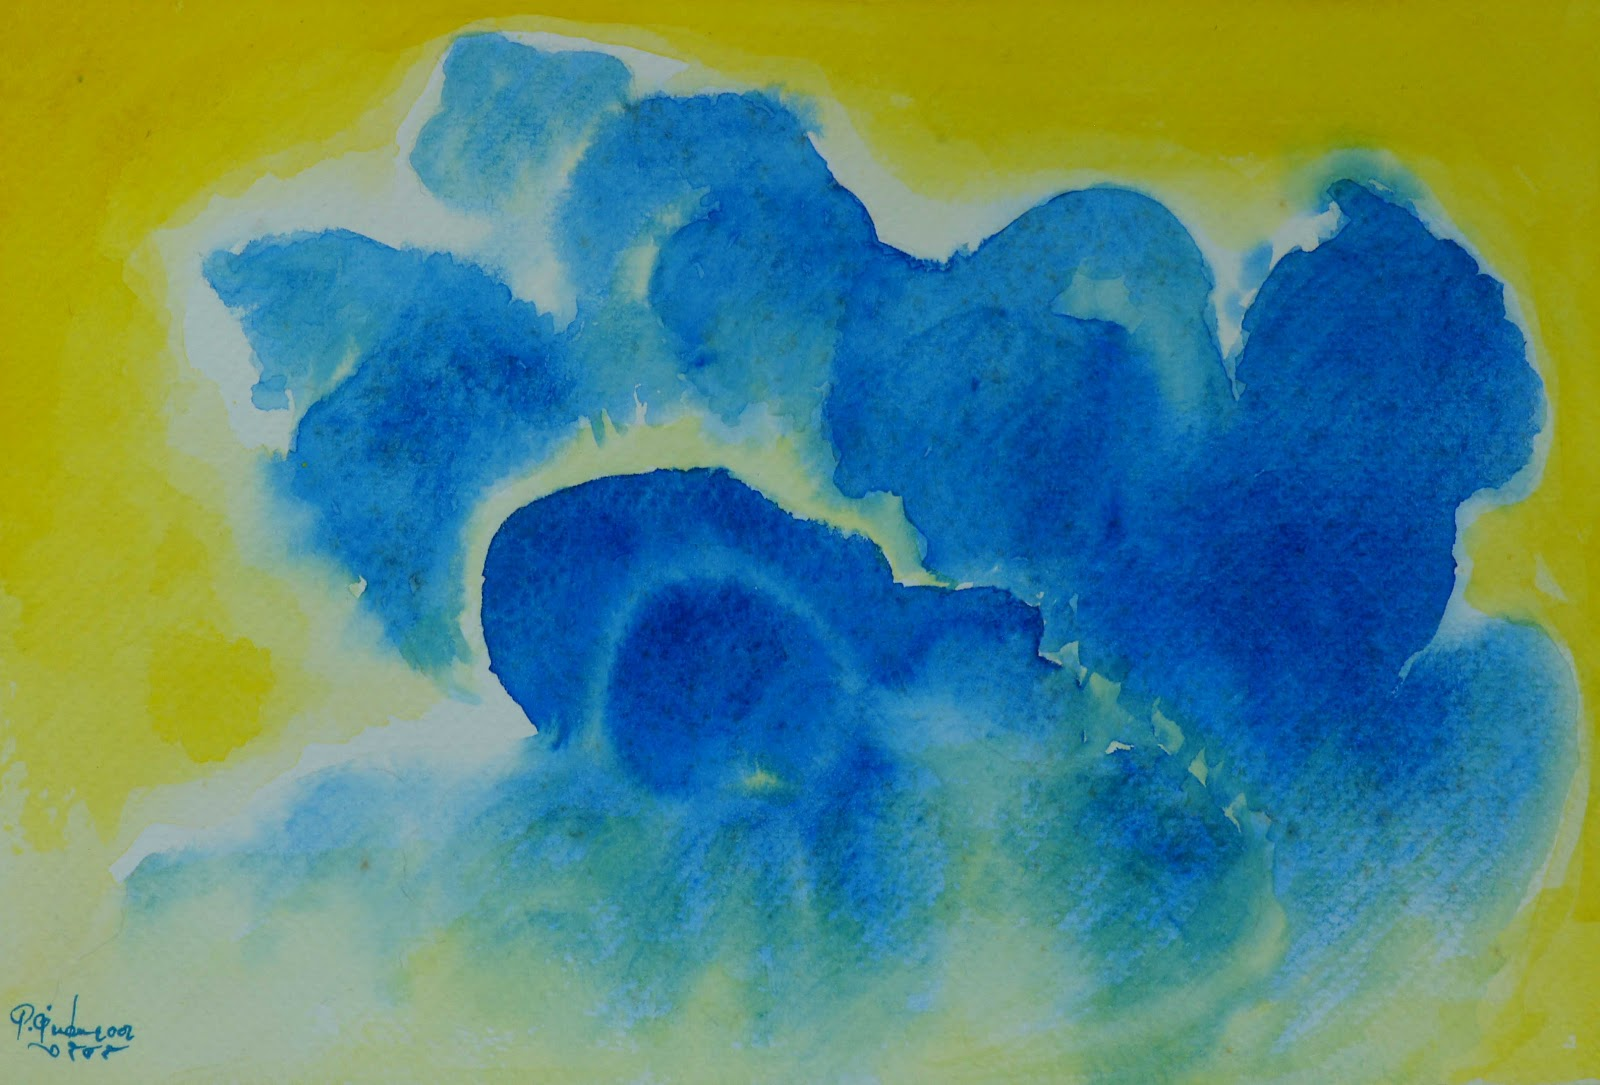 Abstract art by pracha inspiration of the clouds 1 for Inspirational paintings abstract